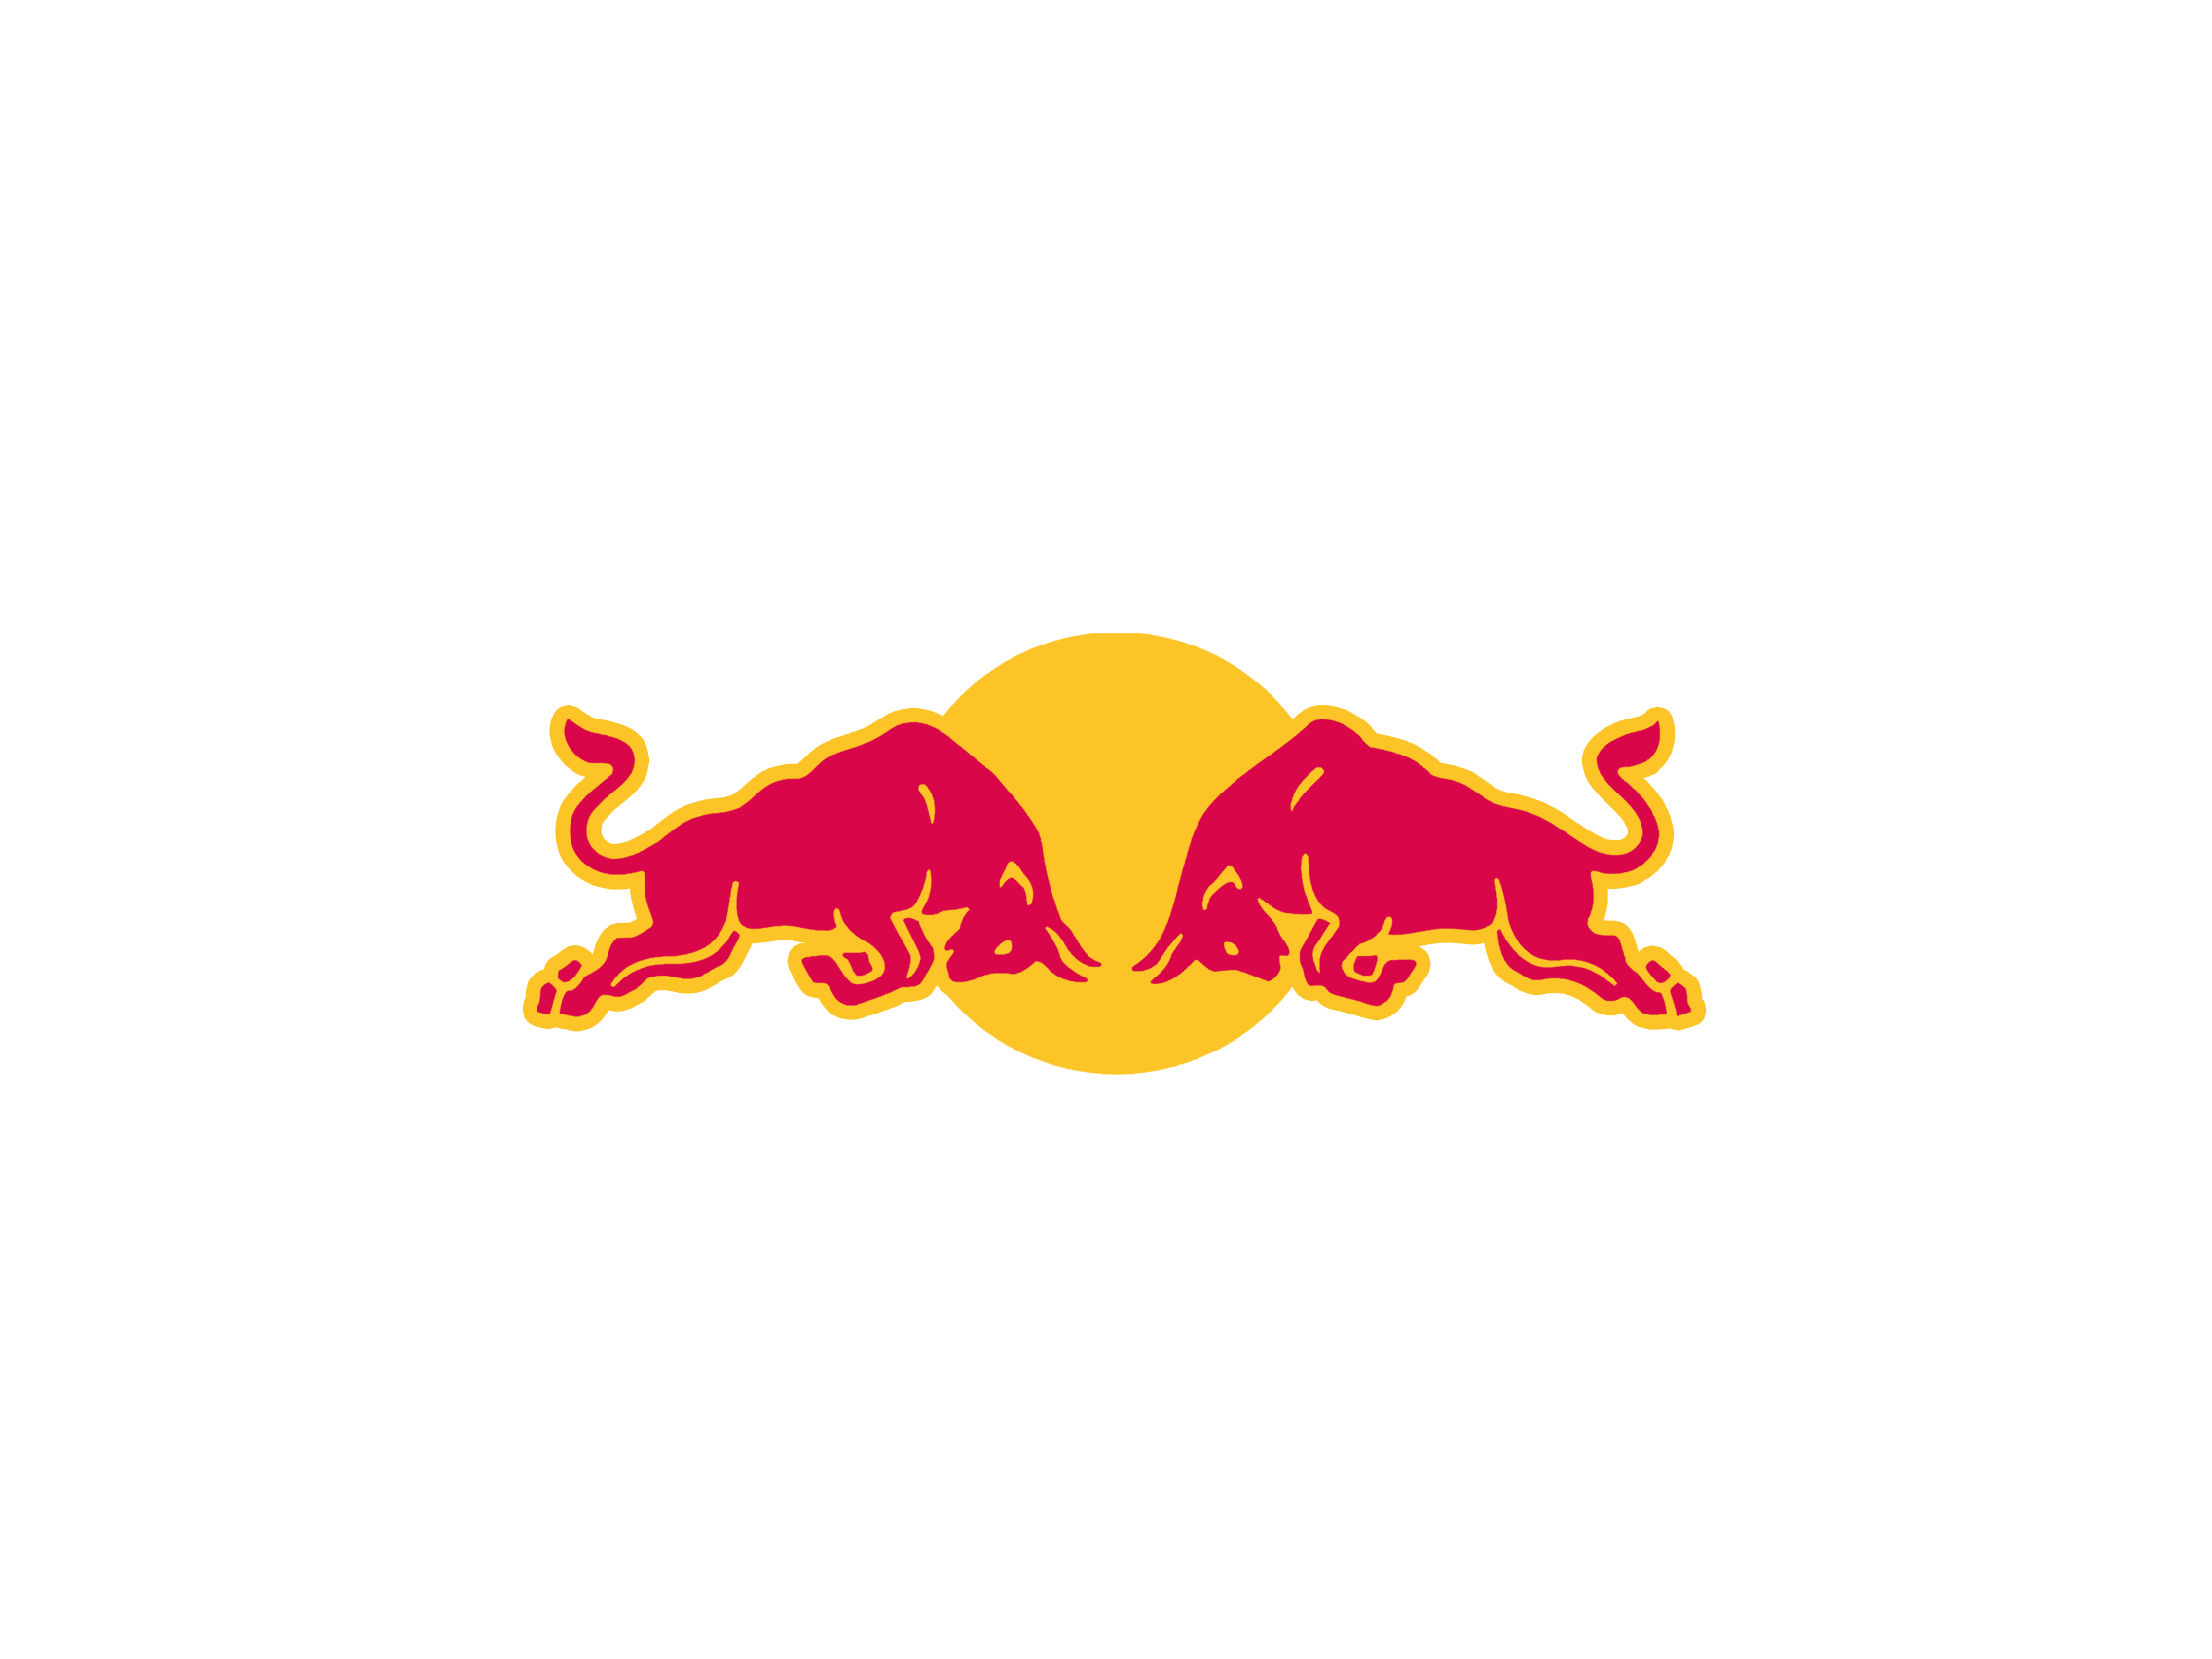 Png 2272x1704 red bull logo background red bull logo png